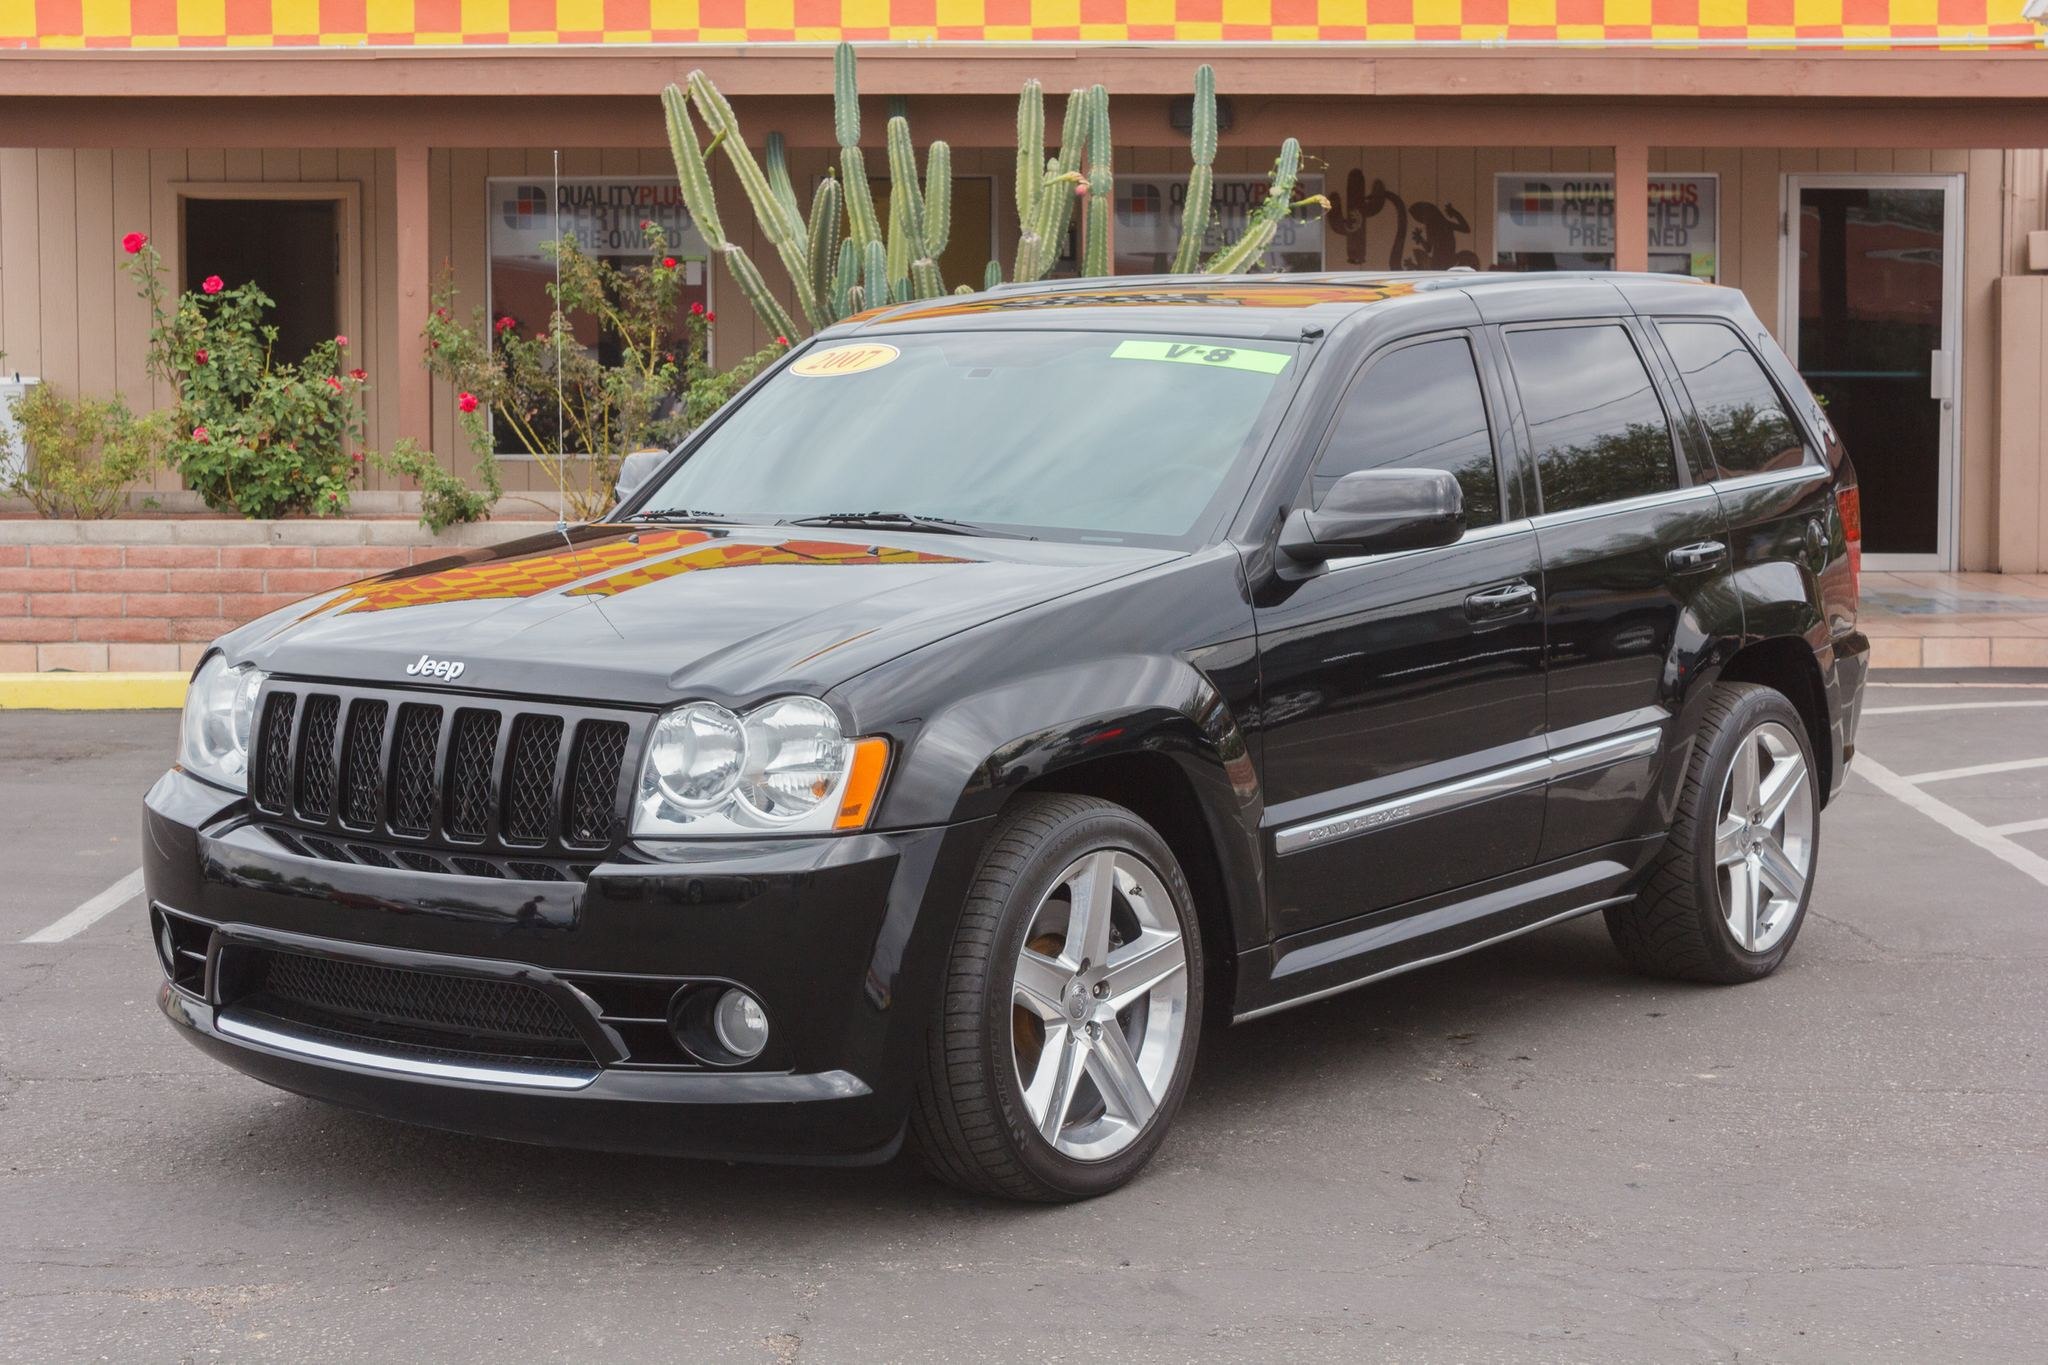 Photo of 2007 Jeep Grand Cherokee 4WD 4d Wagon SRT-8 Black Clearcoat